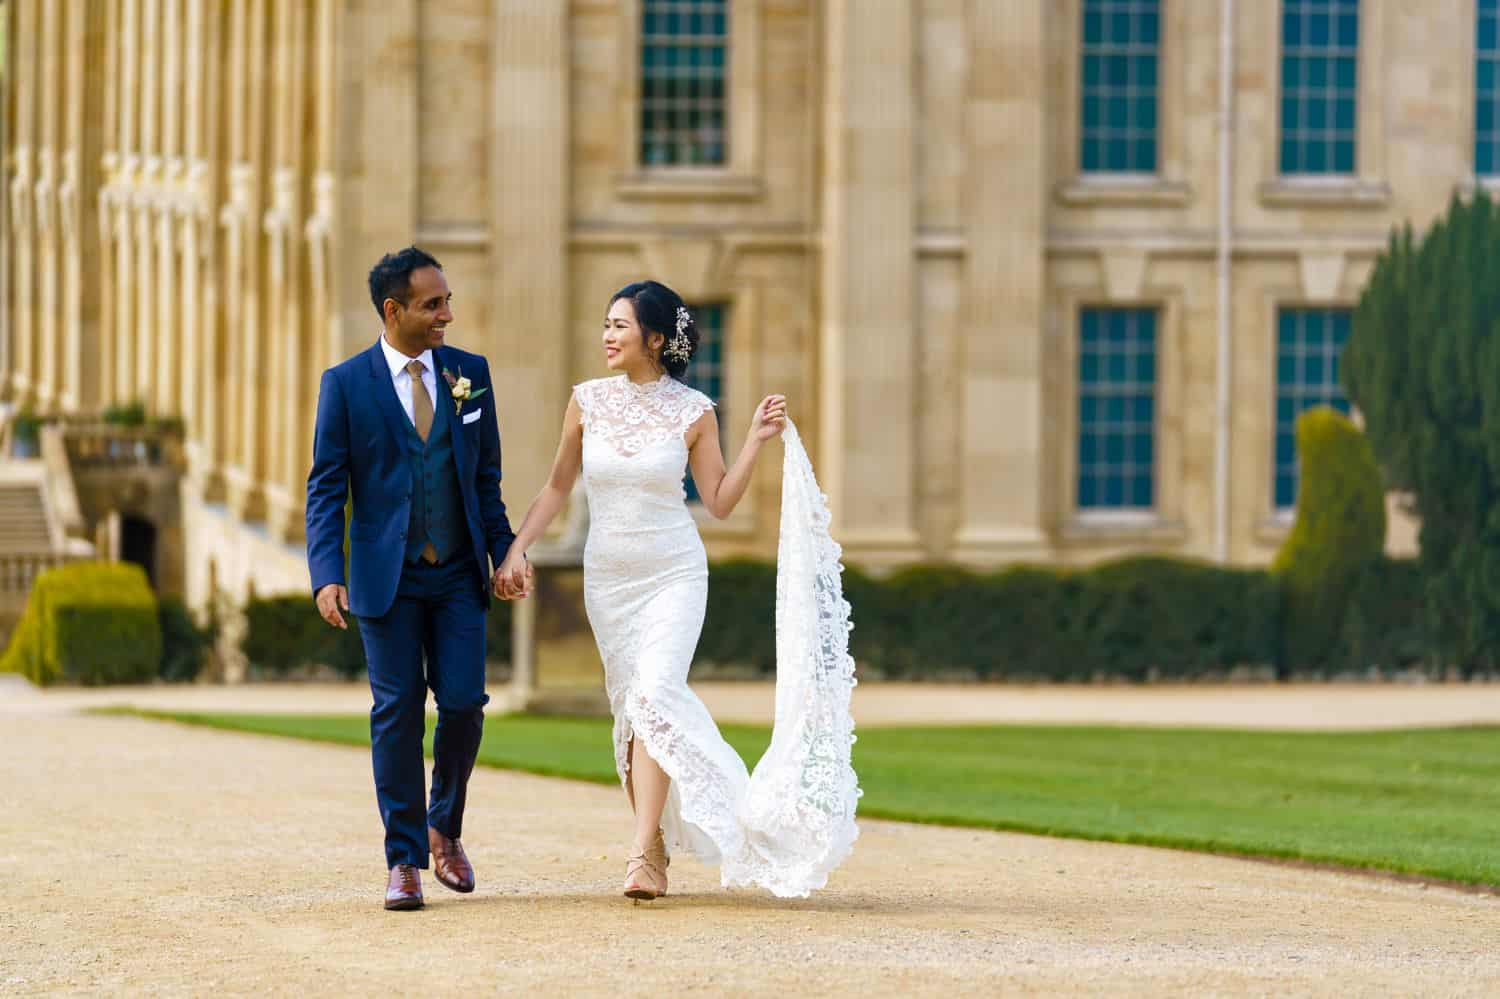 A bride and groom stroll down a garden path outside a luxurious mansion